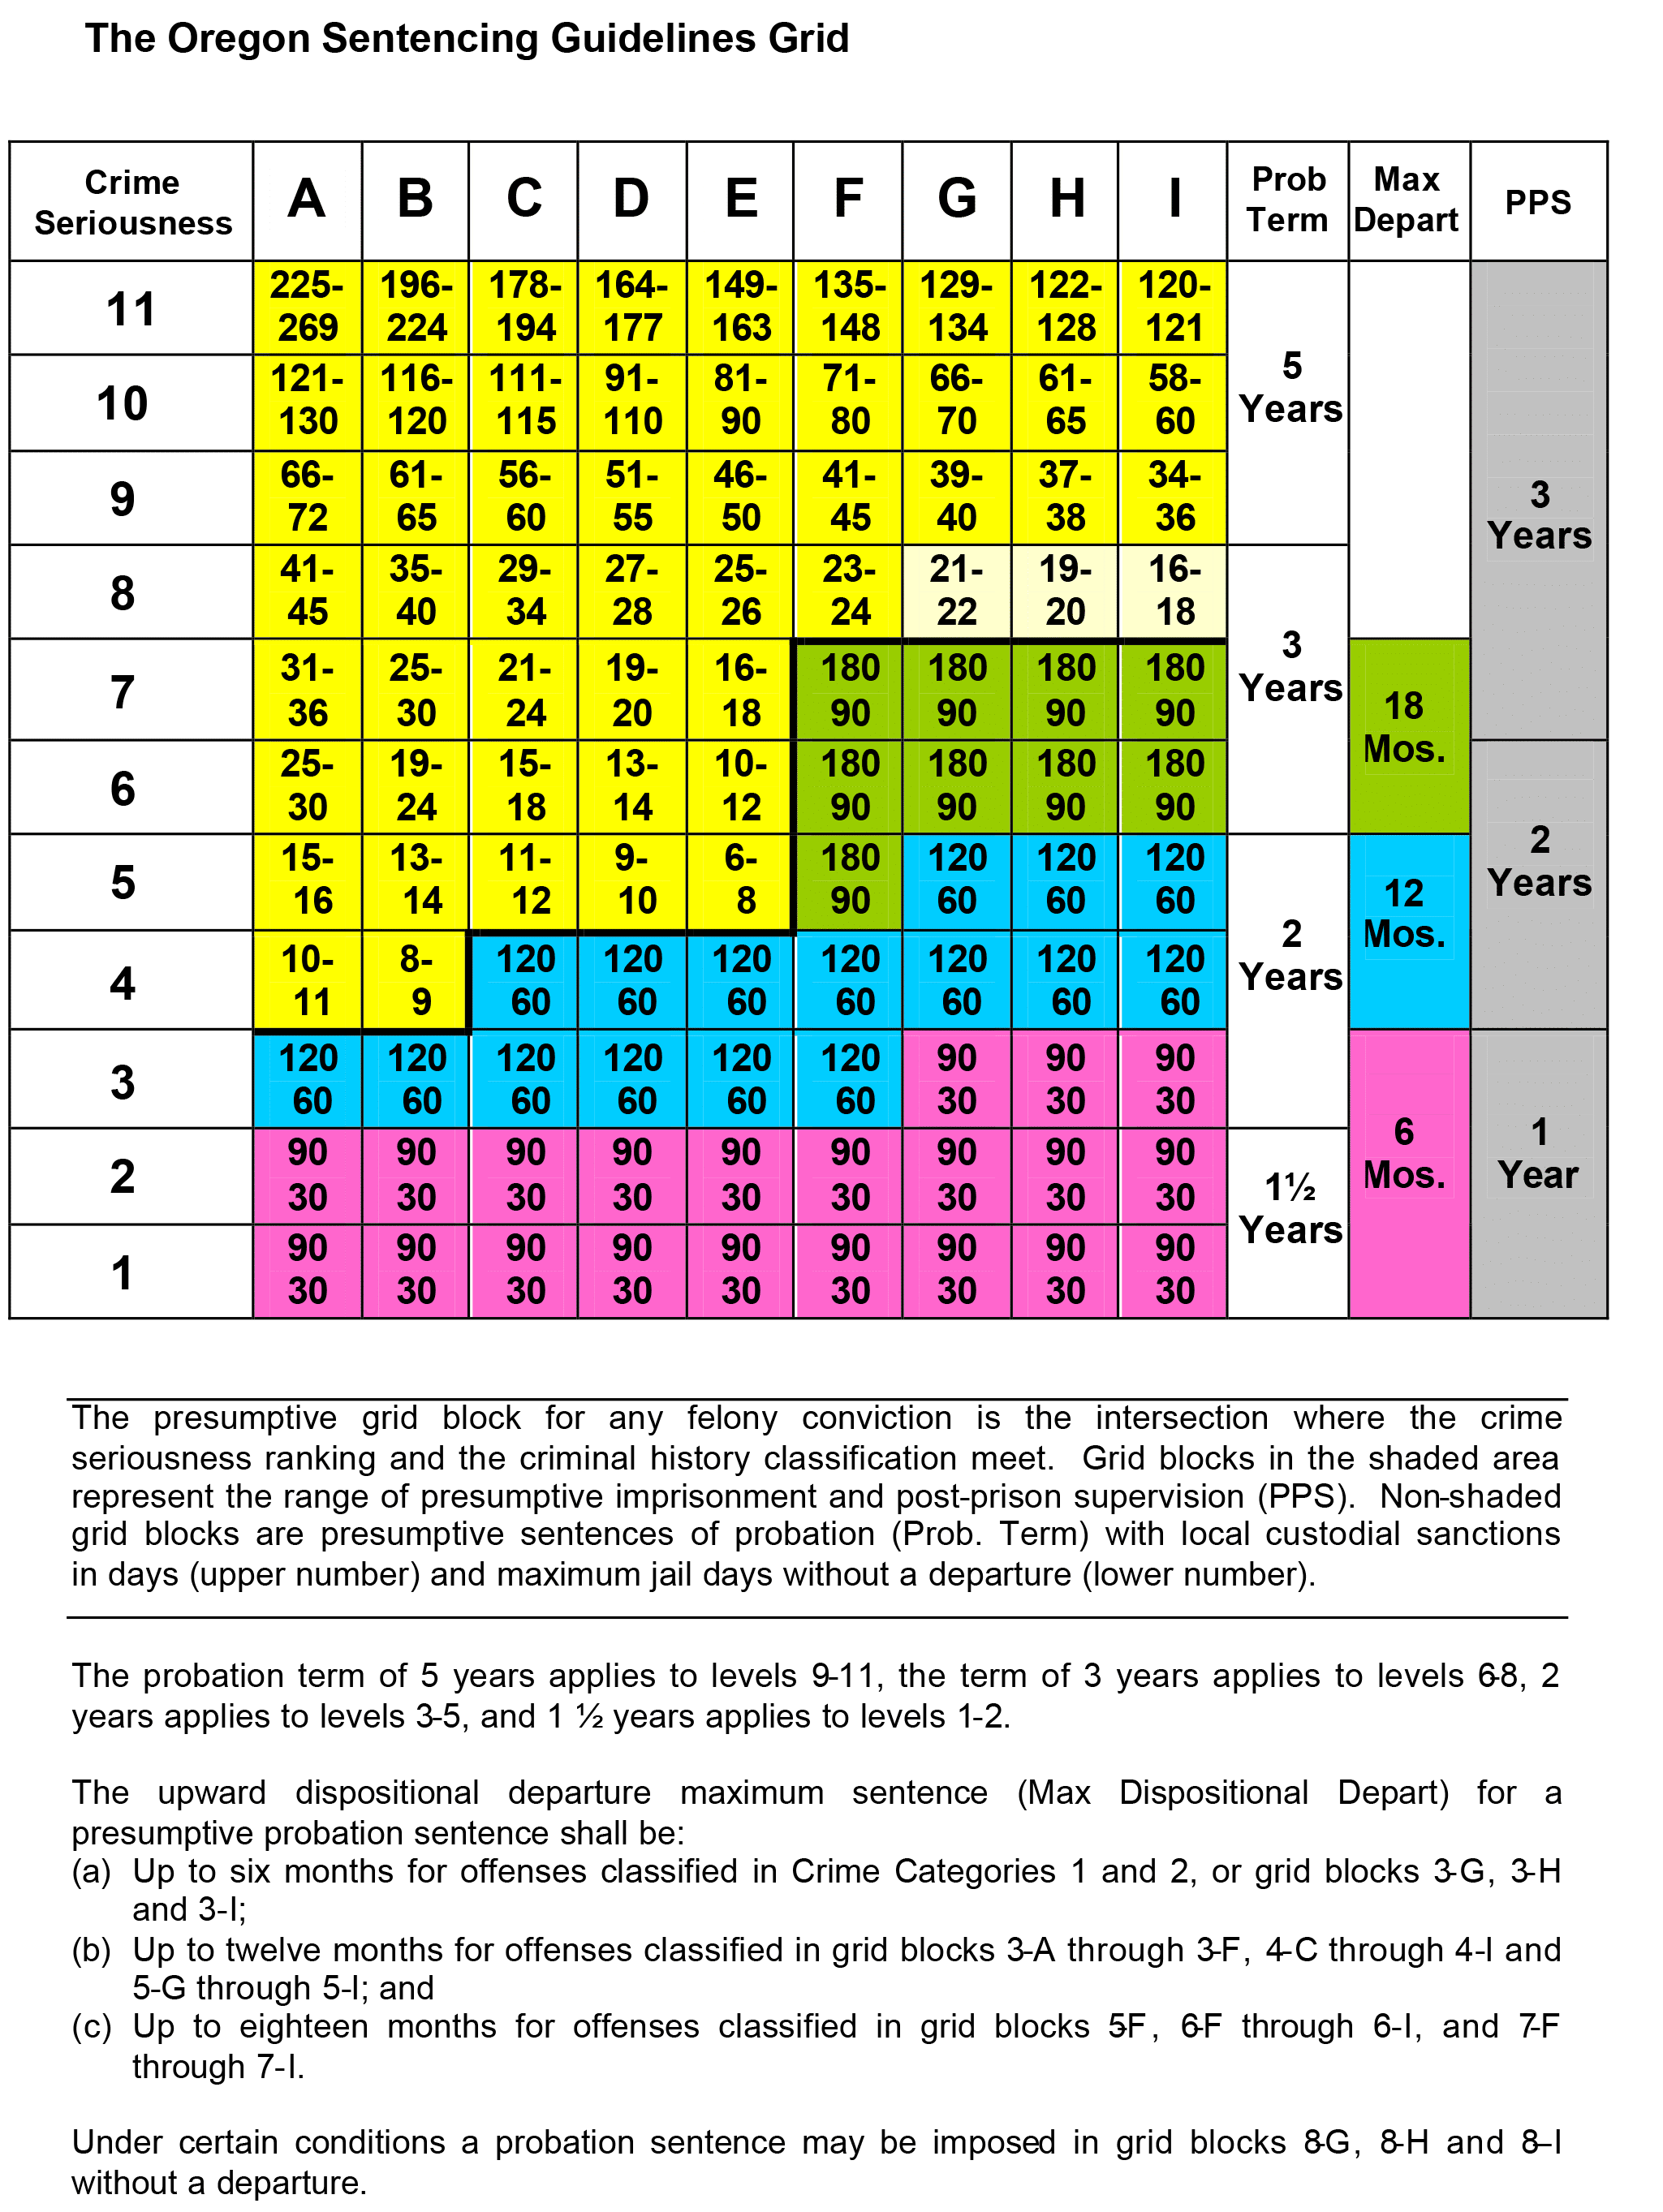 GuidelinesGrid (1)-1